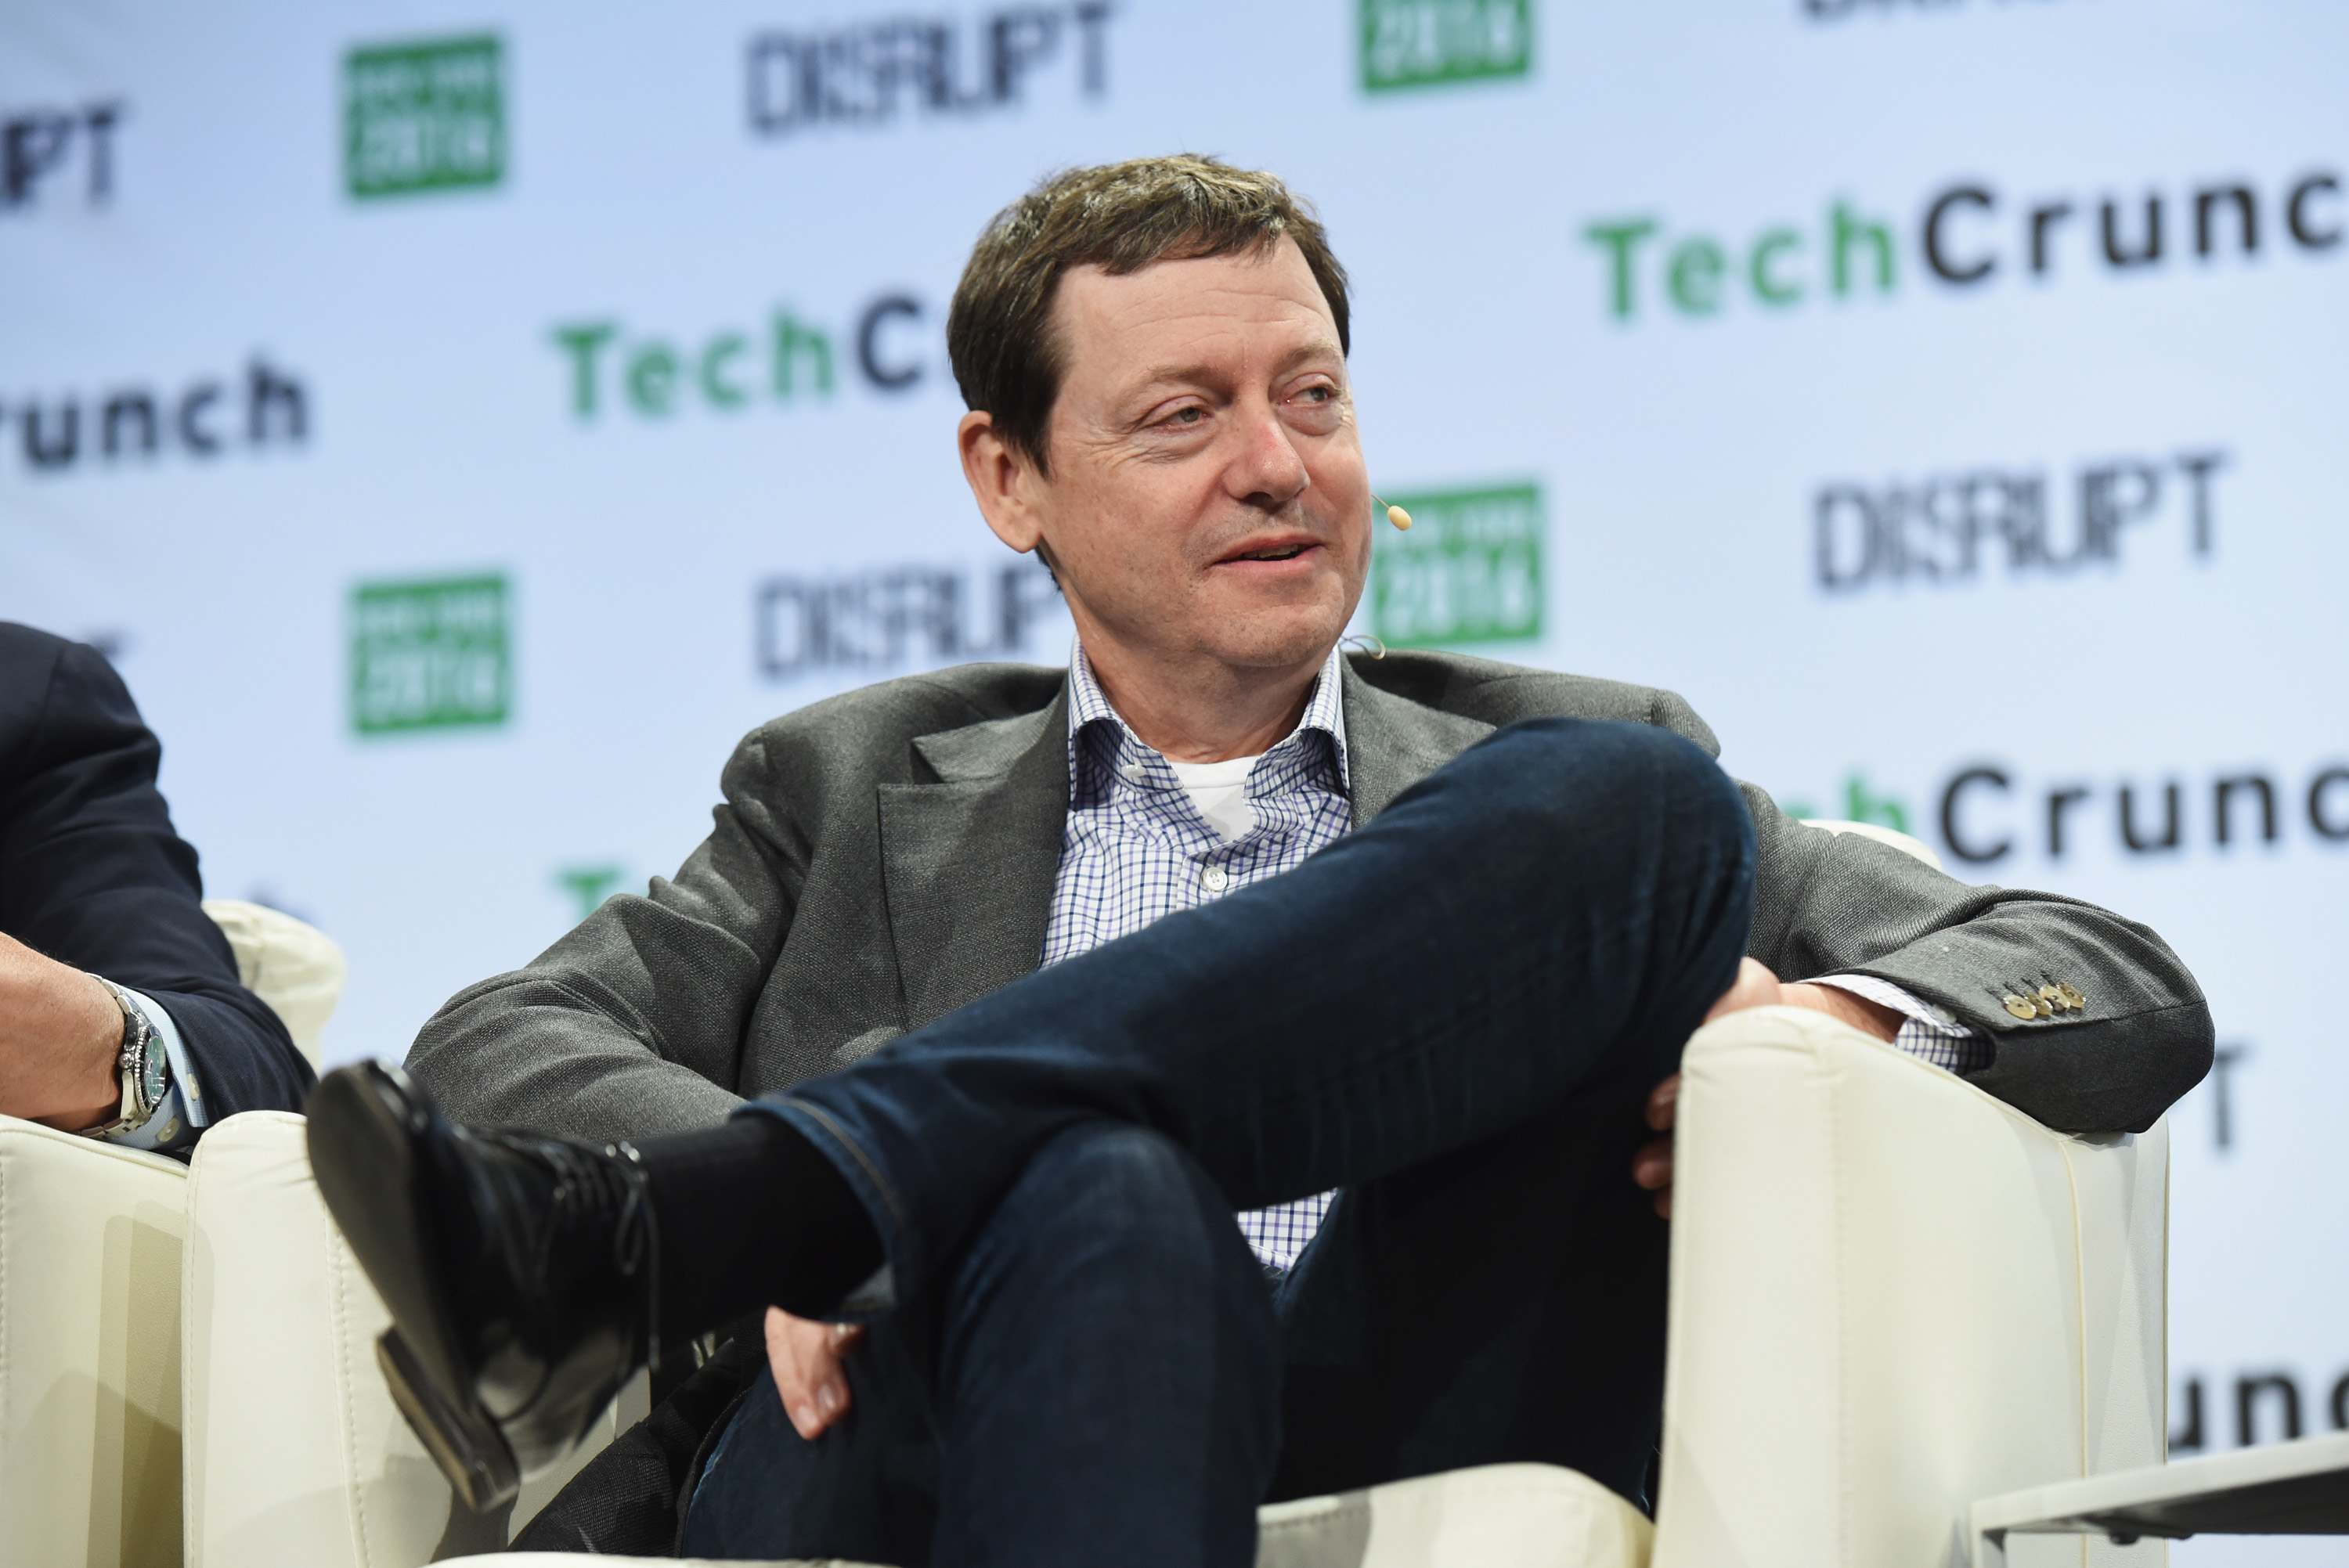 Fred Wilson of Union Square Ventures